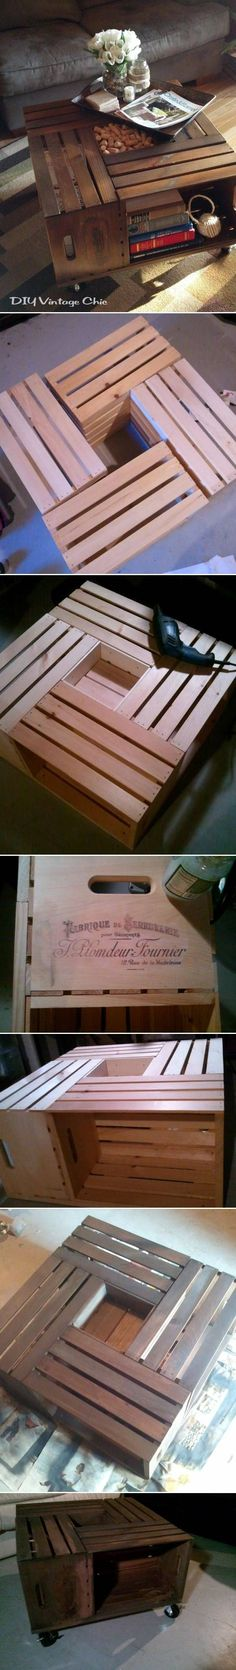 Wine crate coffee table.  Easy and looks chic